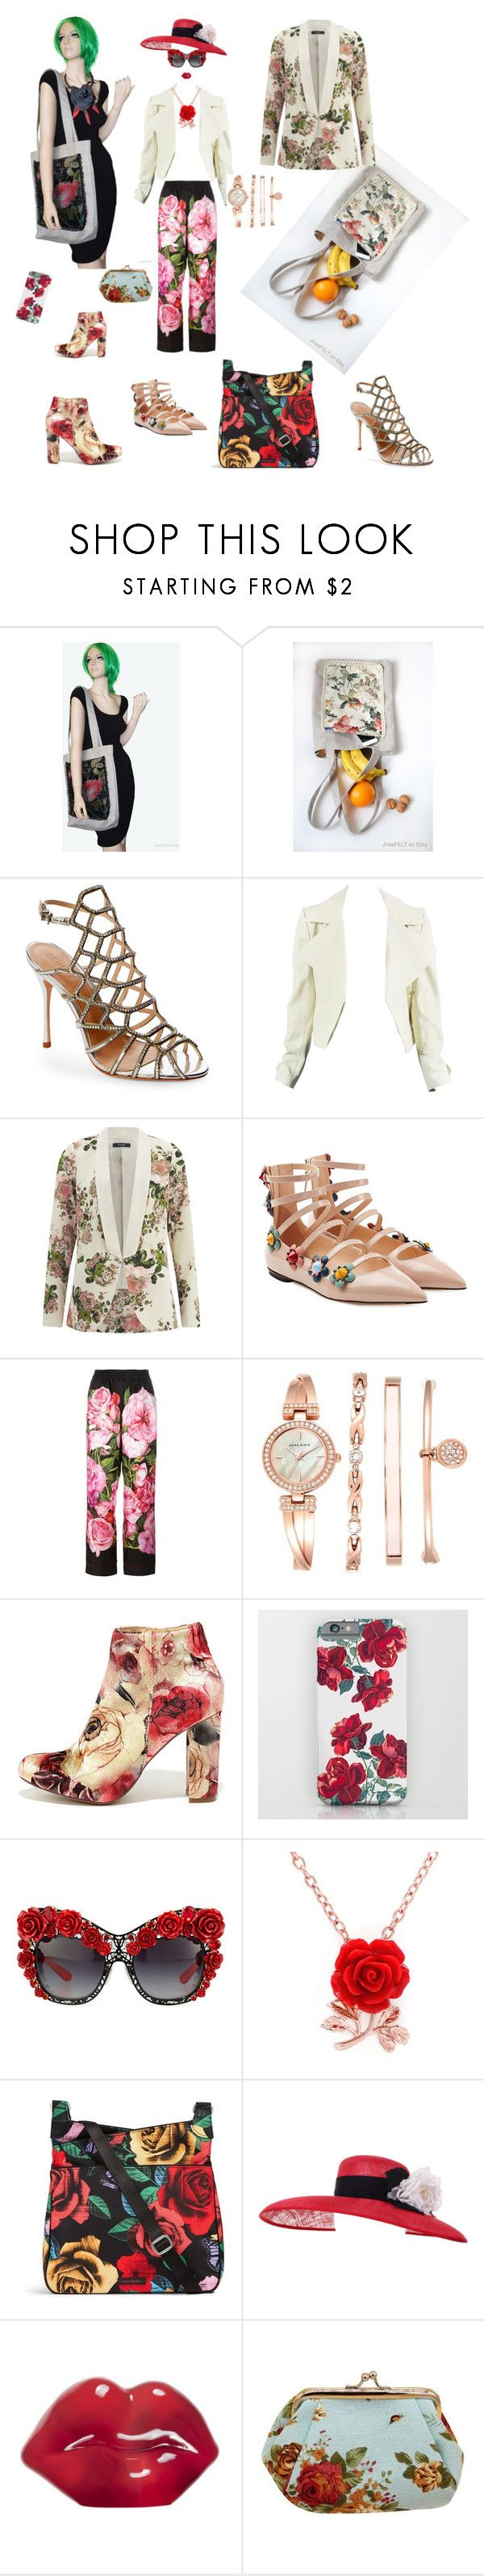 """Flowers in the fashion"" by recznedzielo-pl-jirsa-felt on Polyvore featuring moda, Schutz, VILA, Fendi, Dolce&Gabbana, Anne Klein, Liliana, Vera Bradley, Talitha i Kosta Boda"